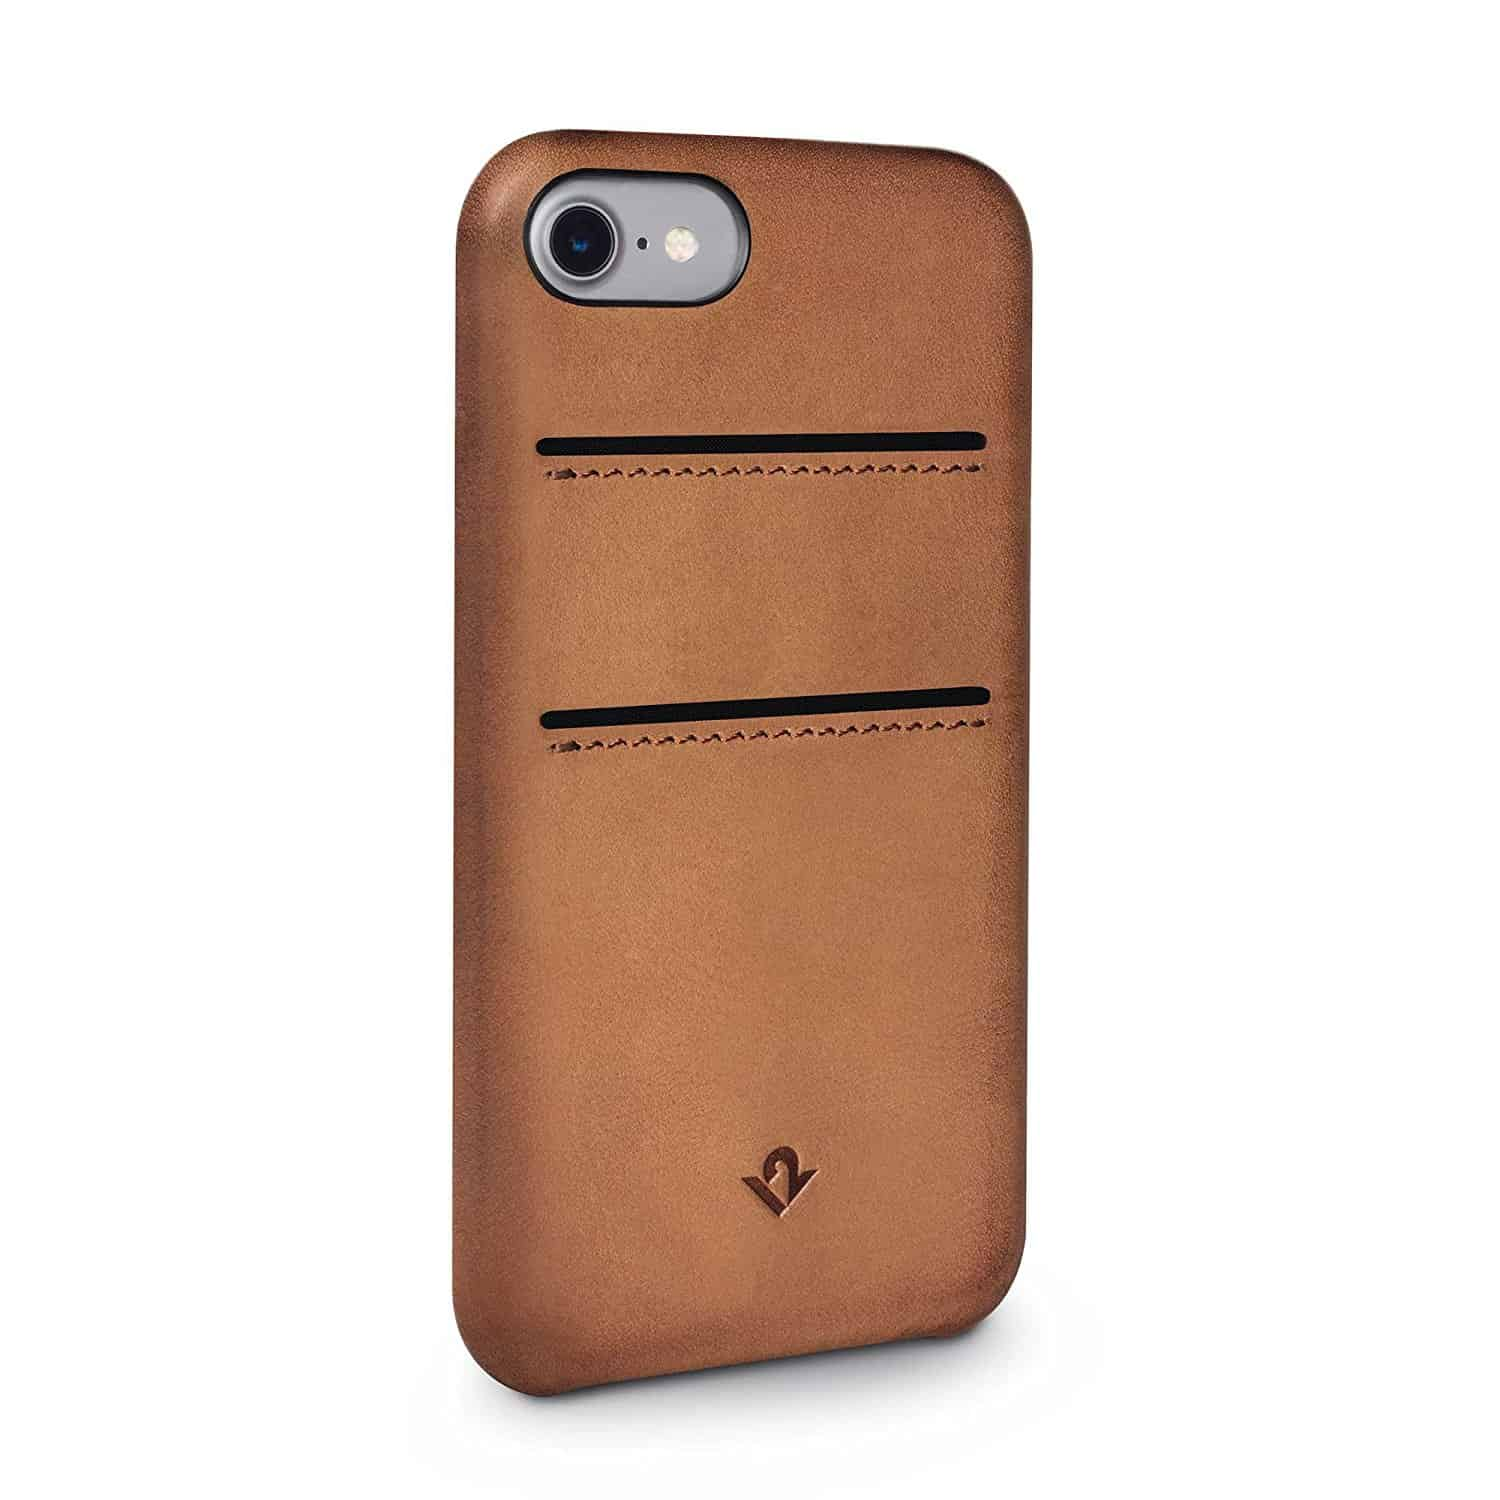 Snag A New Macbook For 400 Off Deals Steals Cult Of Mac Beats Headphone Solo Hd1 Save Up To 11 On Twelve South Relaxed Leather Iphone Cases